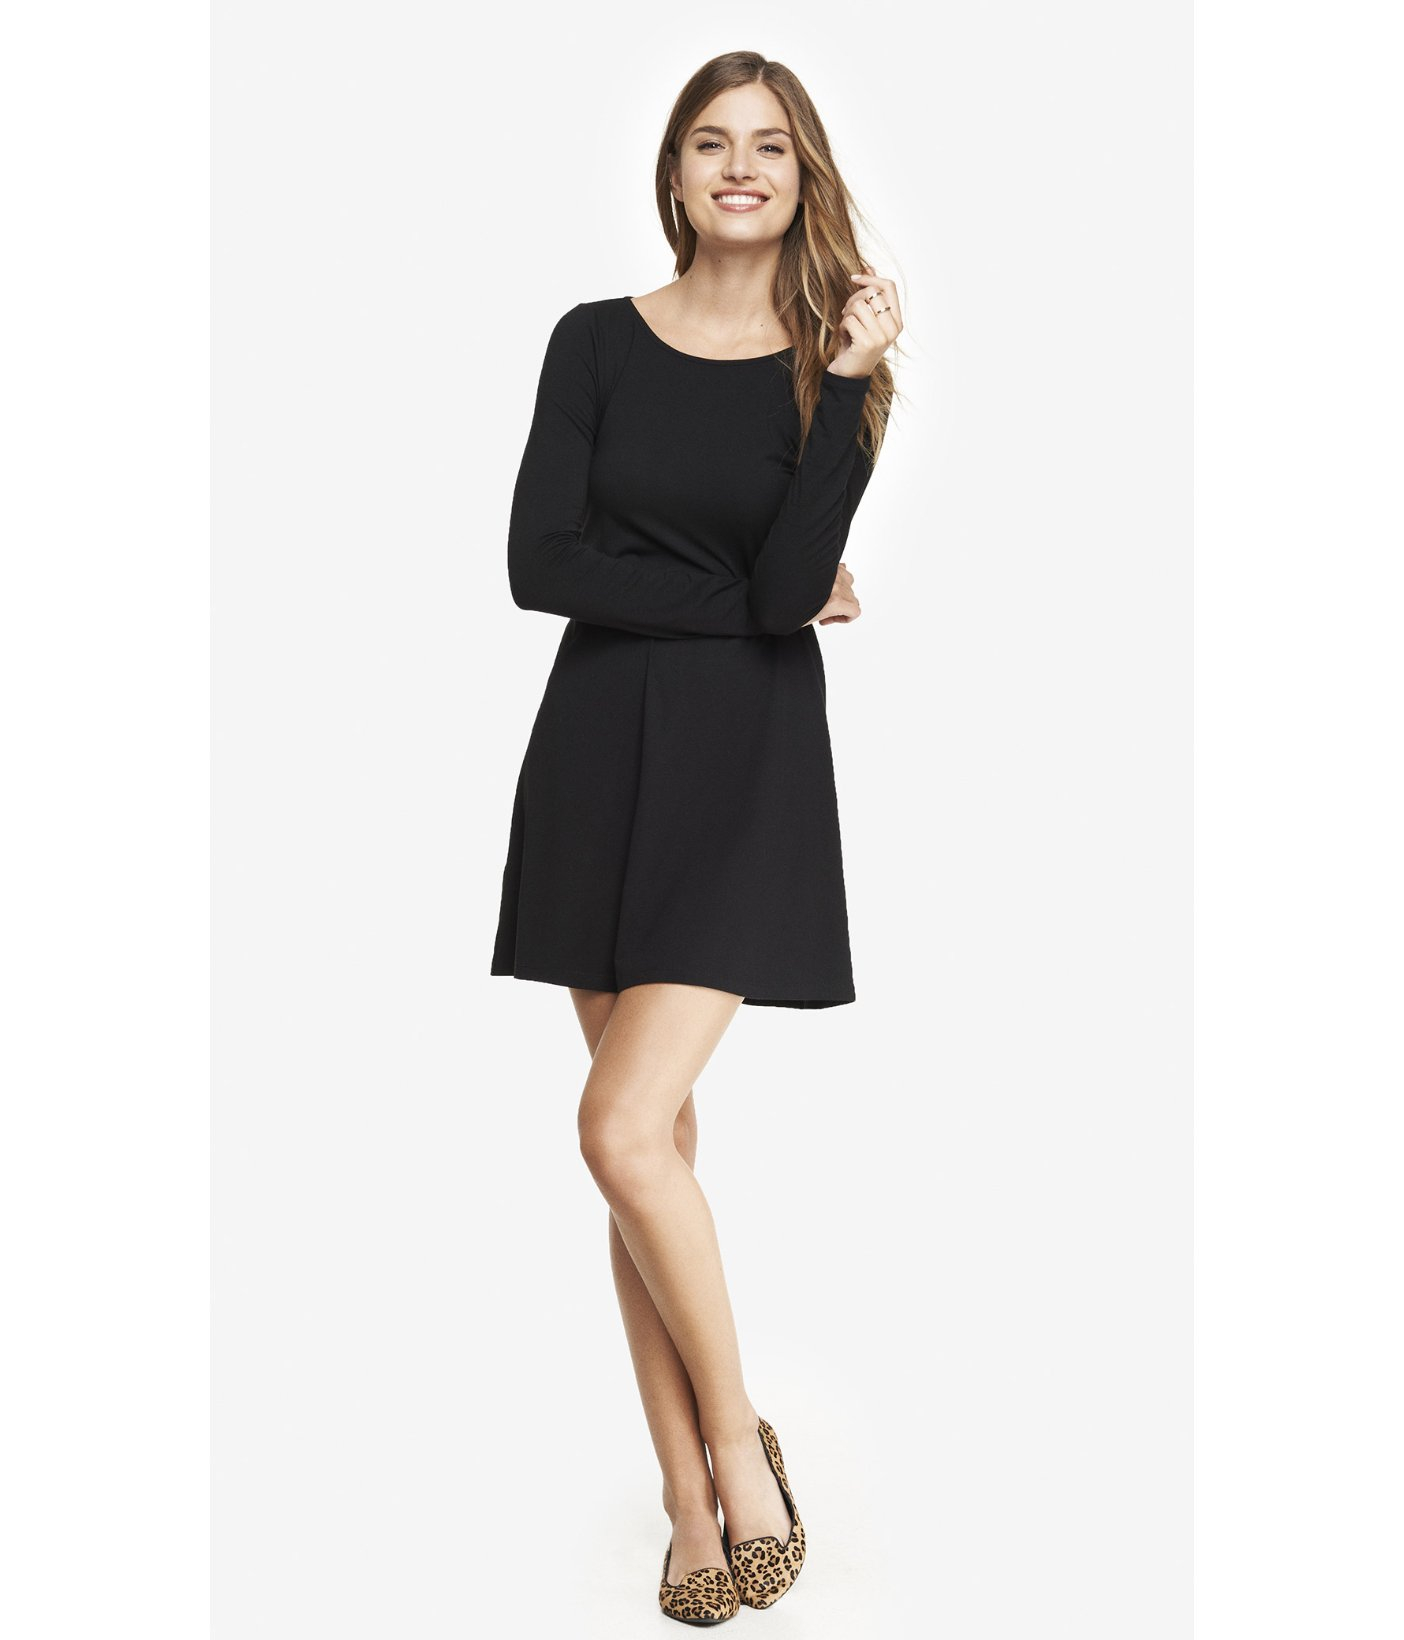 To acquire Black Express dress pictures trends